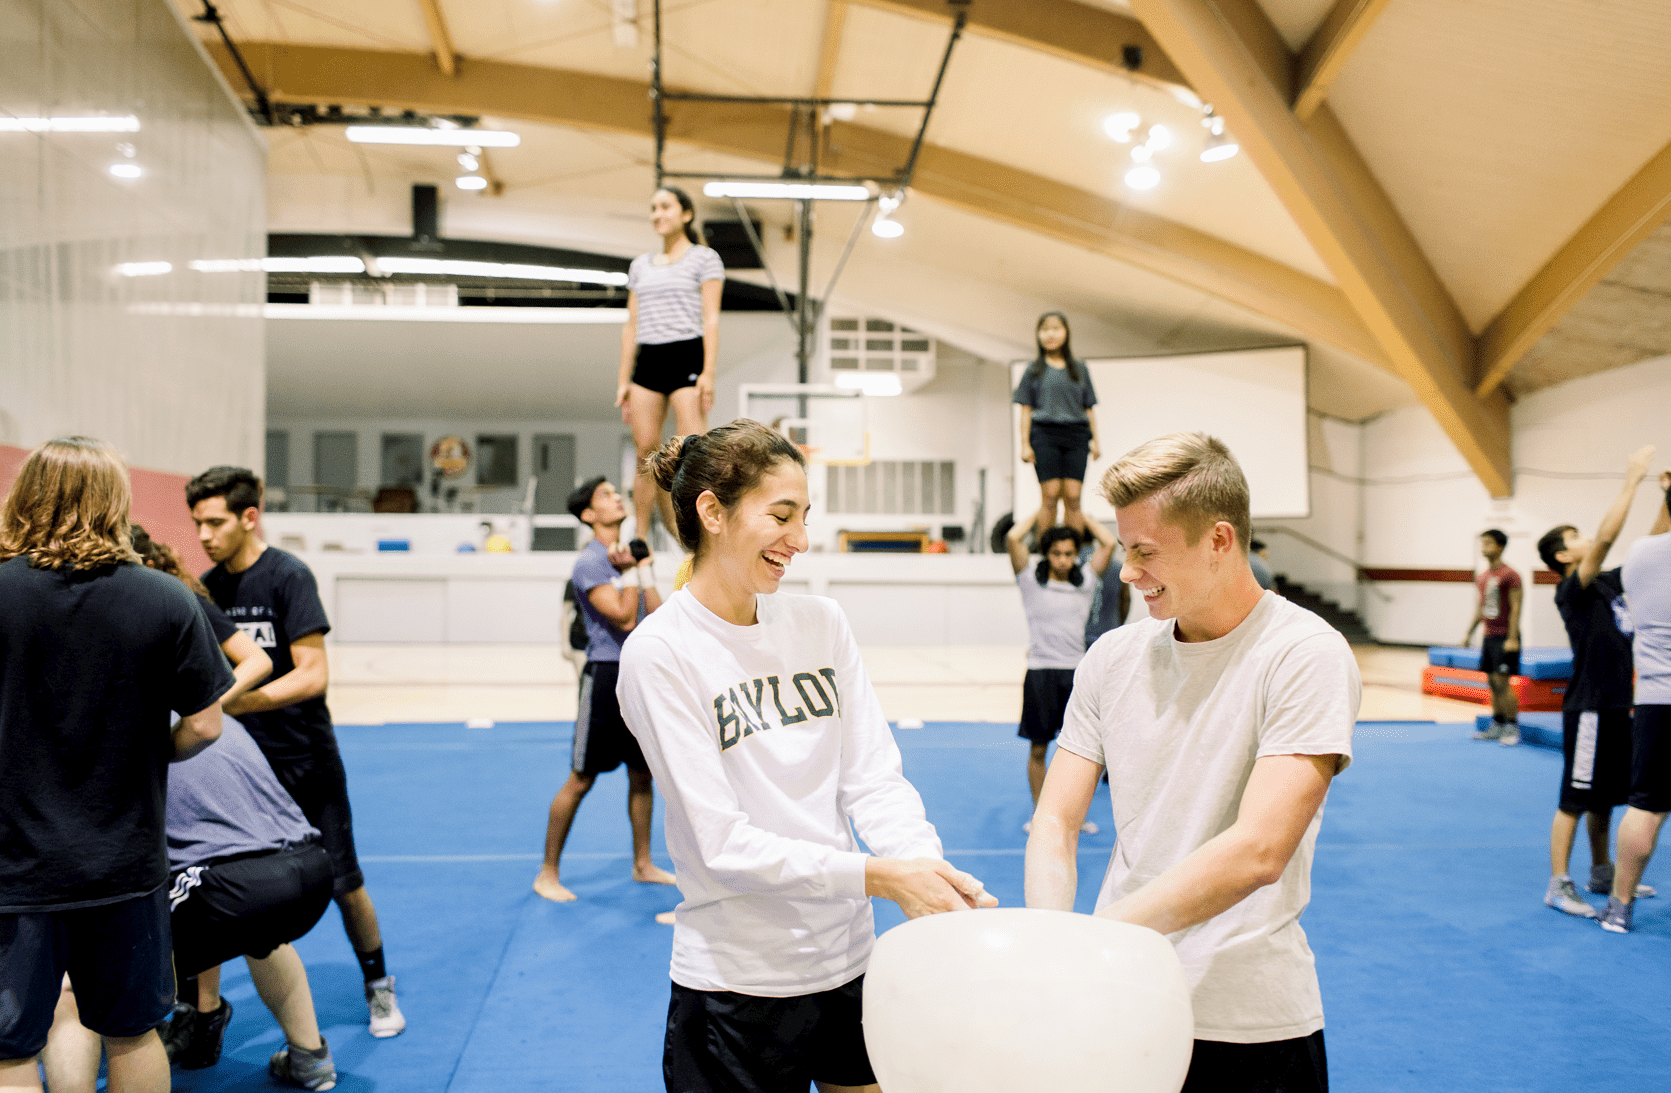 In the gymnasium, the SWAT team practices in the background while we focus on two of the members applying chalk on their hands preparing to practice